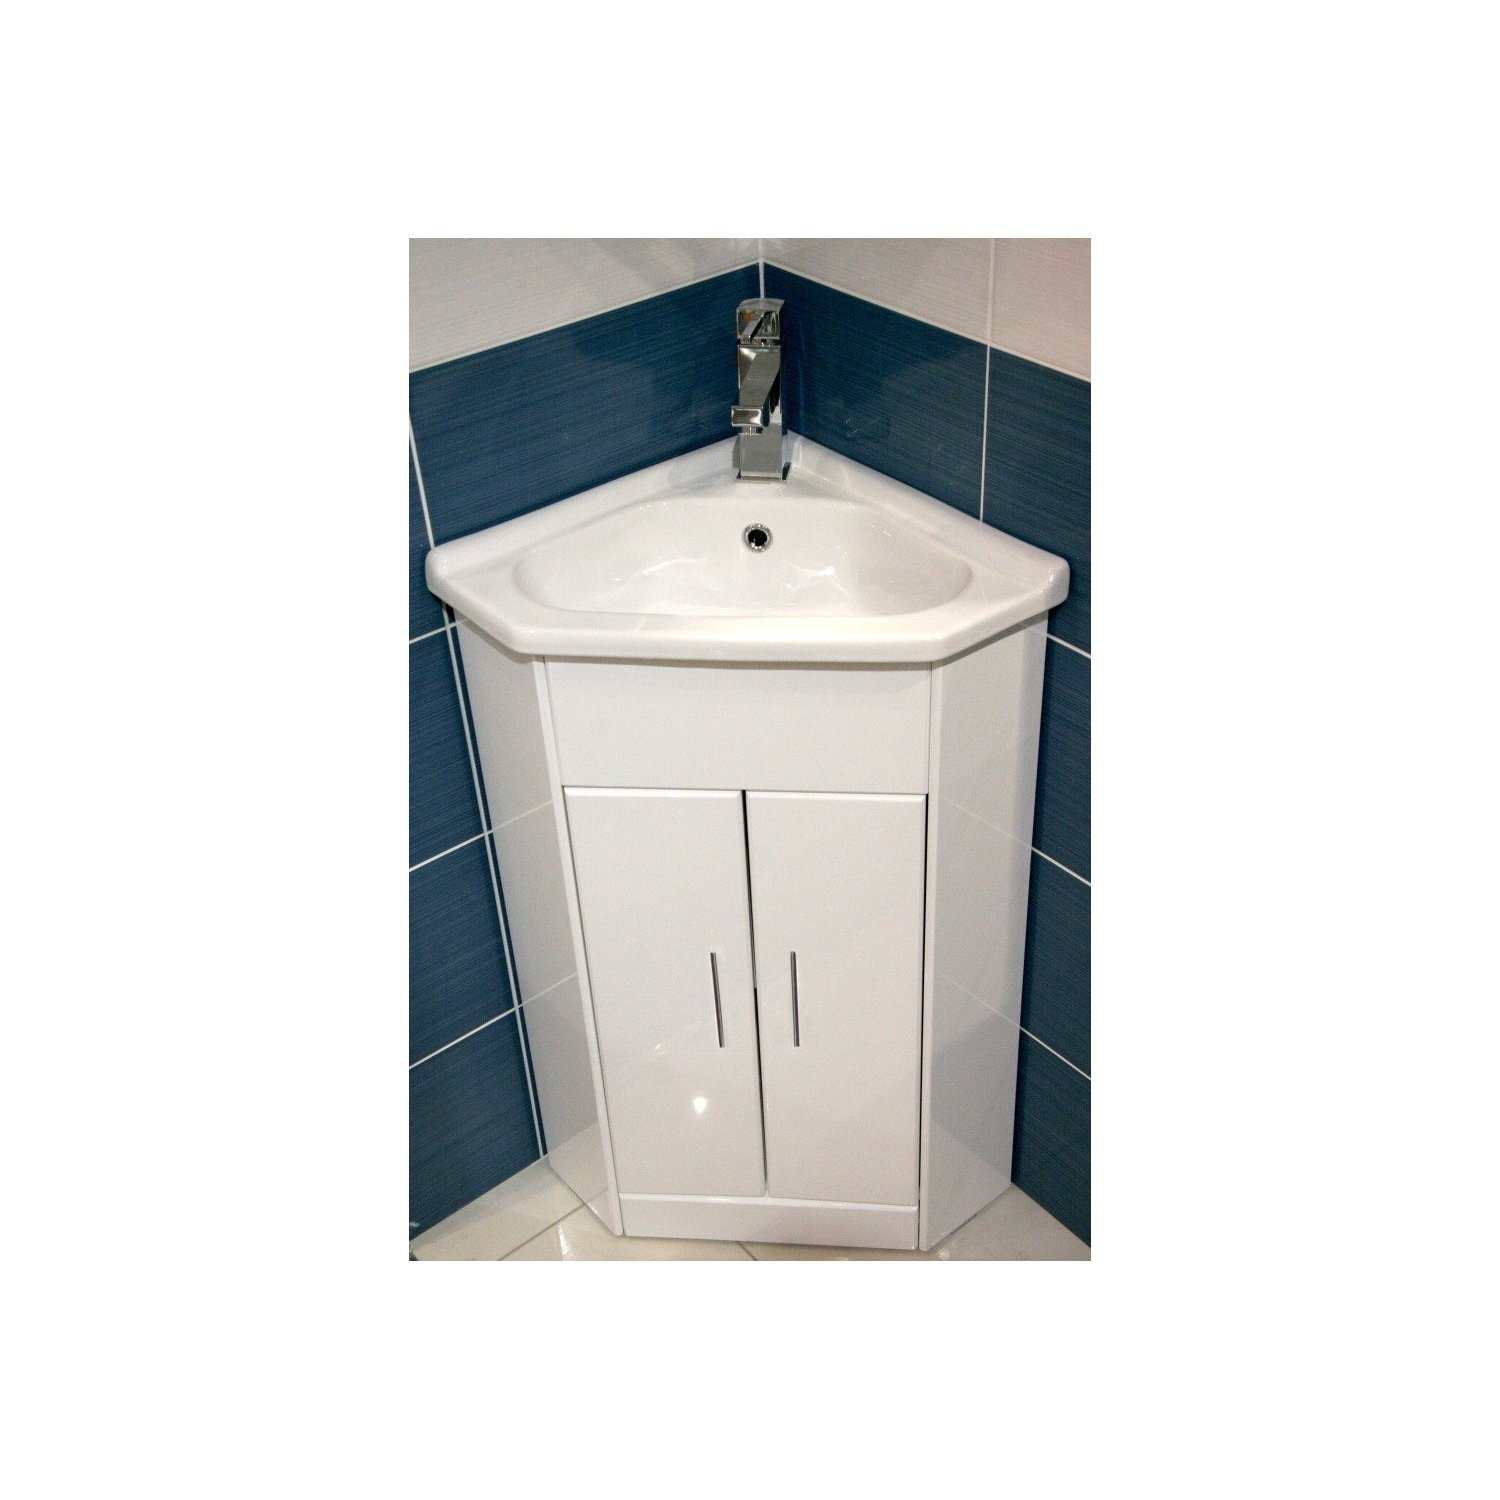 Small Vanity Sink Units Manificent Astonishing Small Bathroom Vanity Sink Combo Small Bathroom